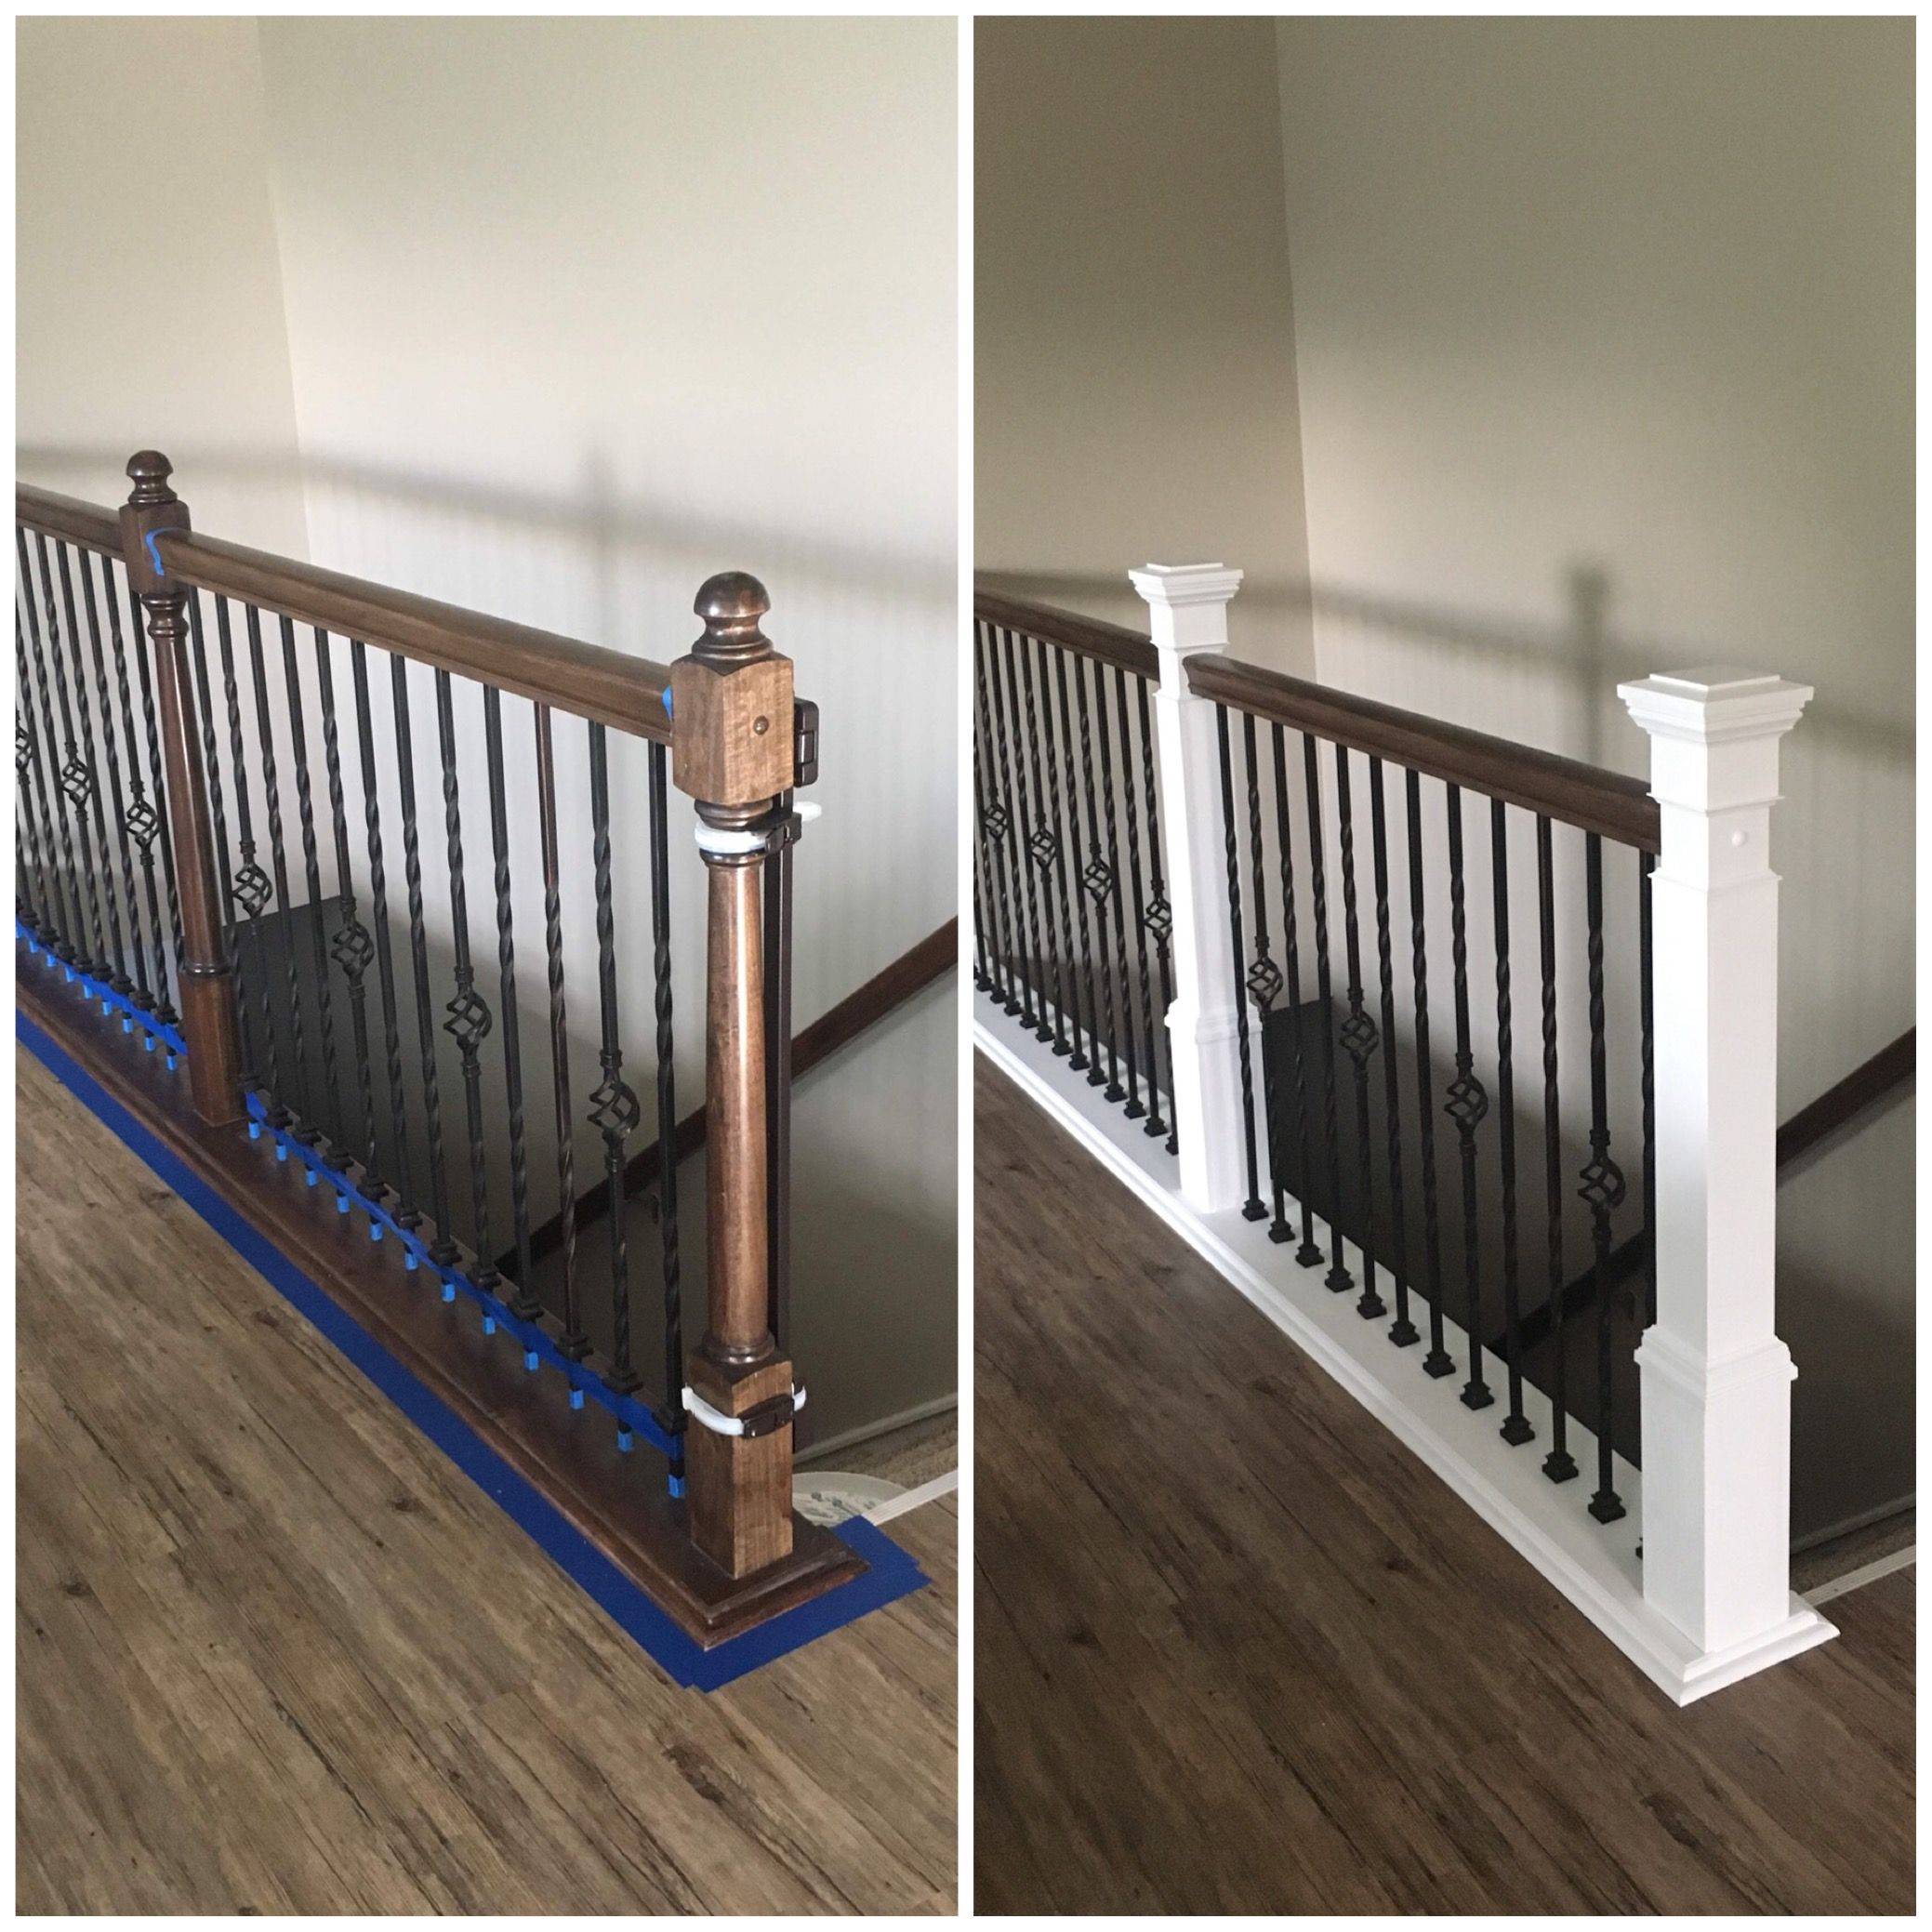 Diy boring builder banister painted base white and built